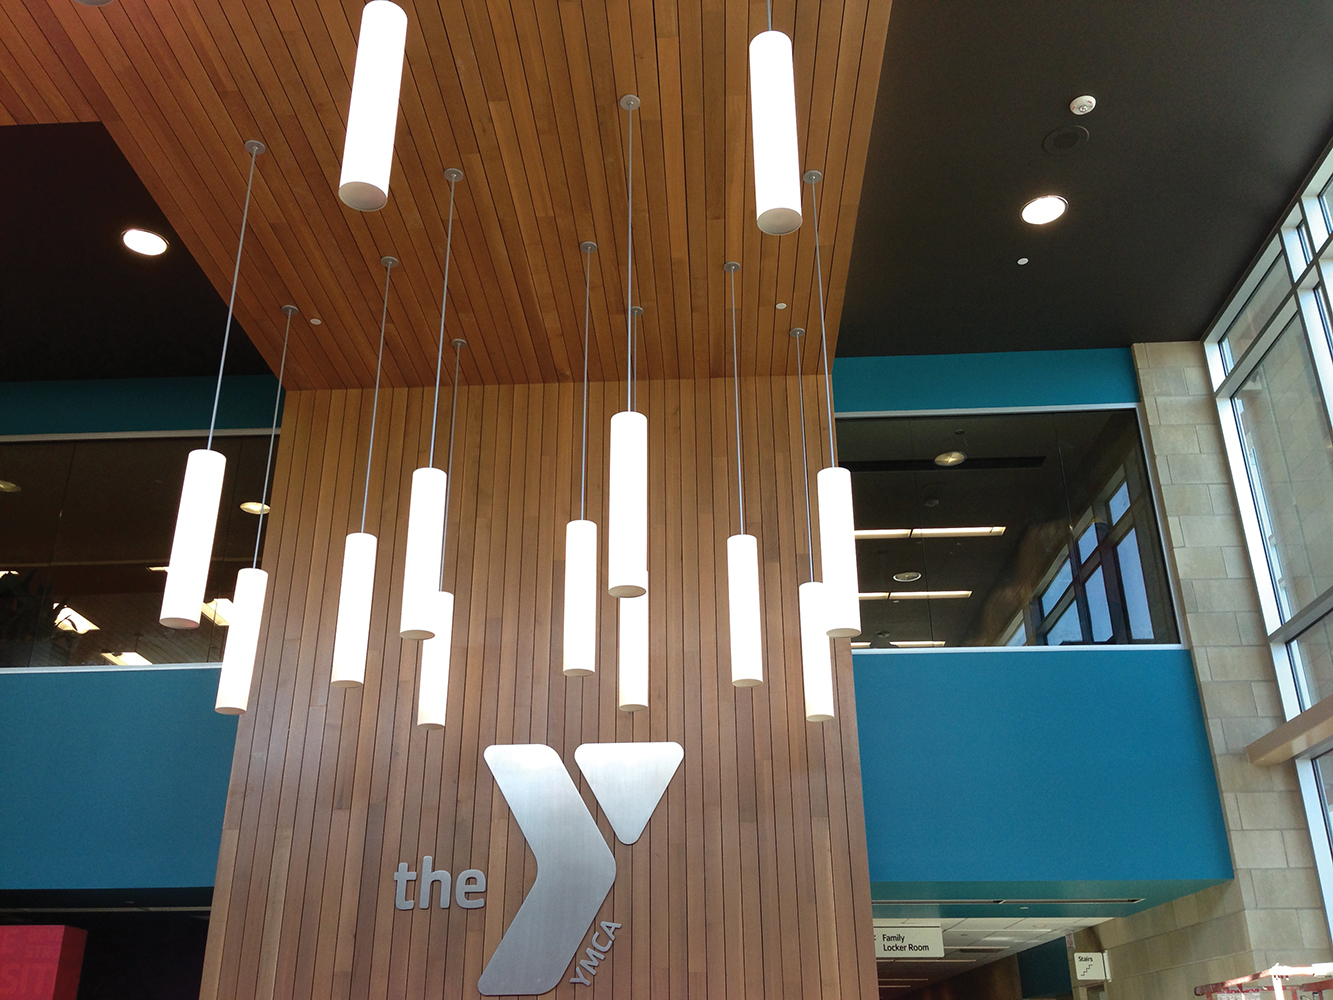 Sequence modern lighting fixtures illuminate a wood-paneled YMCA entryway.